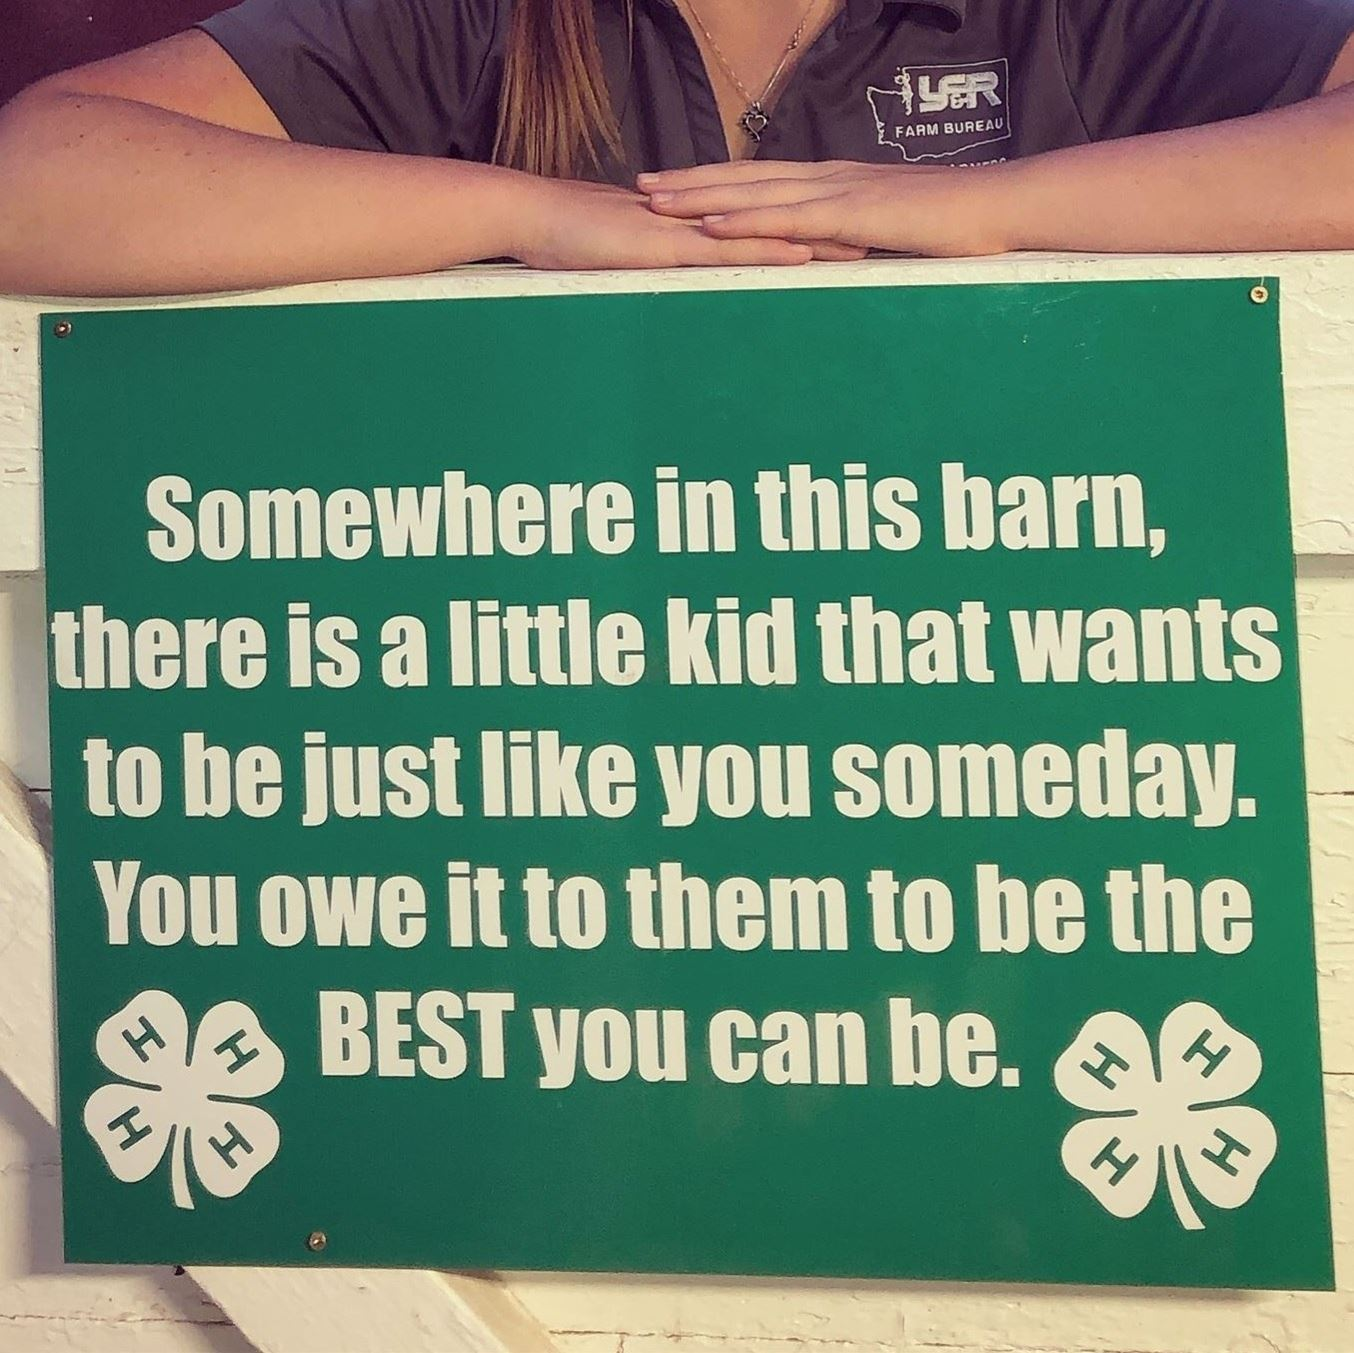 4-H Contests